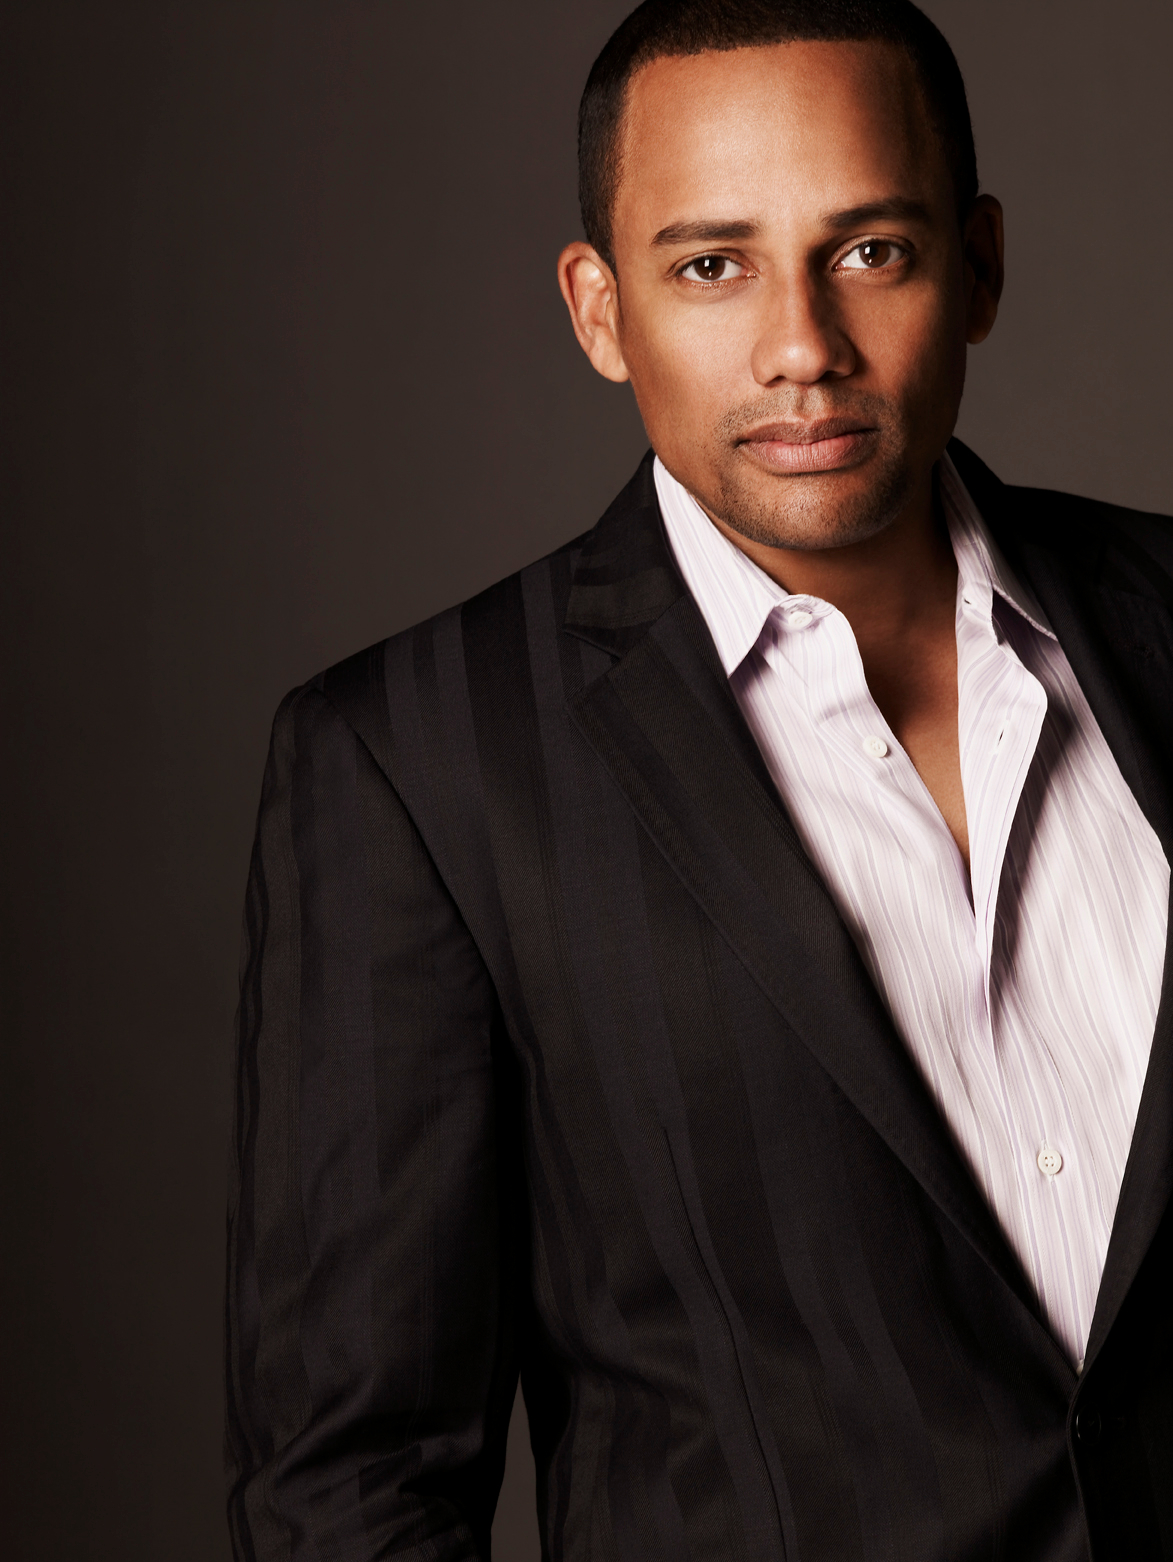 Hill Harper will speak at the 2014 Commencement Exercises